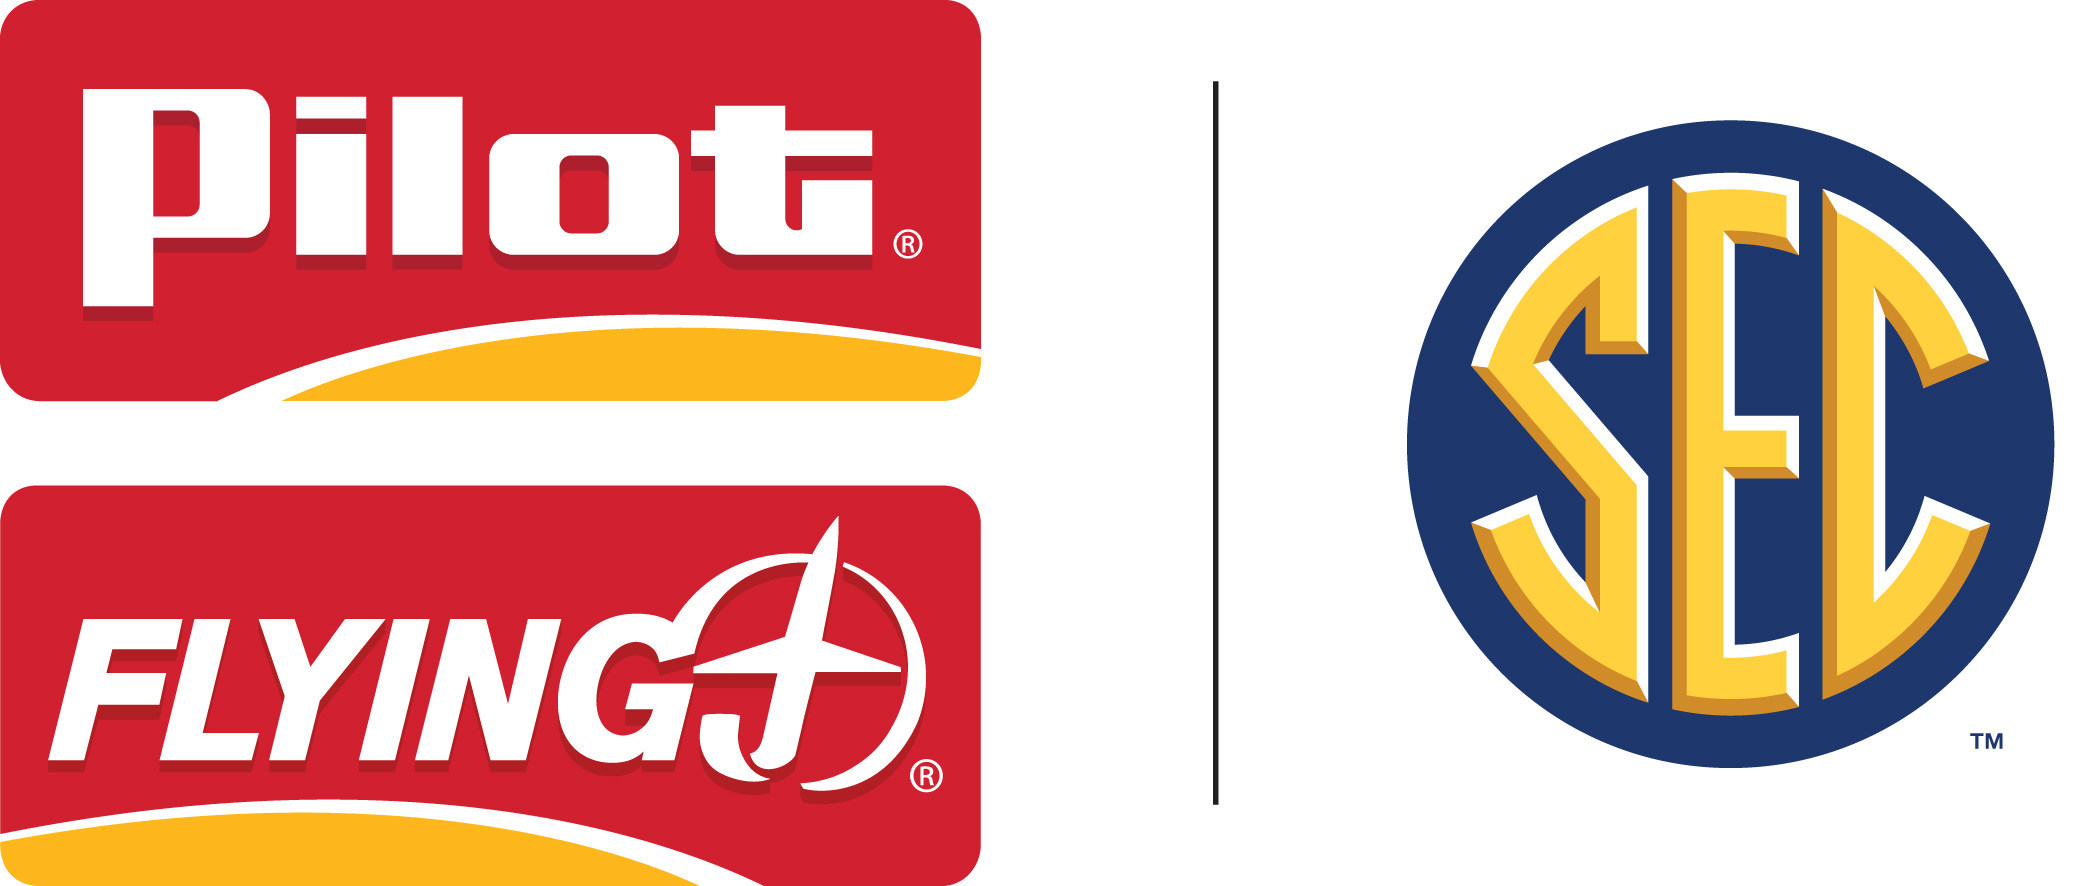 Pilot Flying J Launches Sweepstakes to \'Fuel Fans\'.